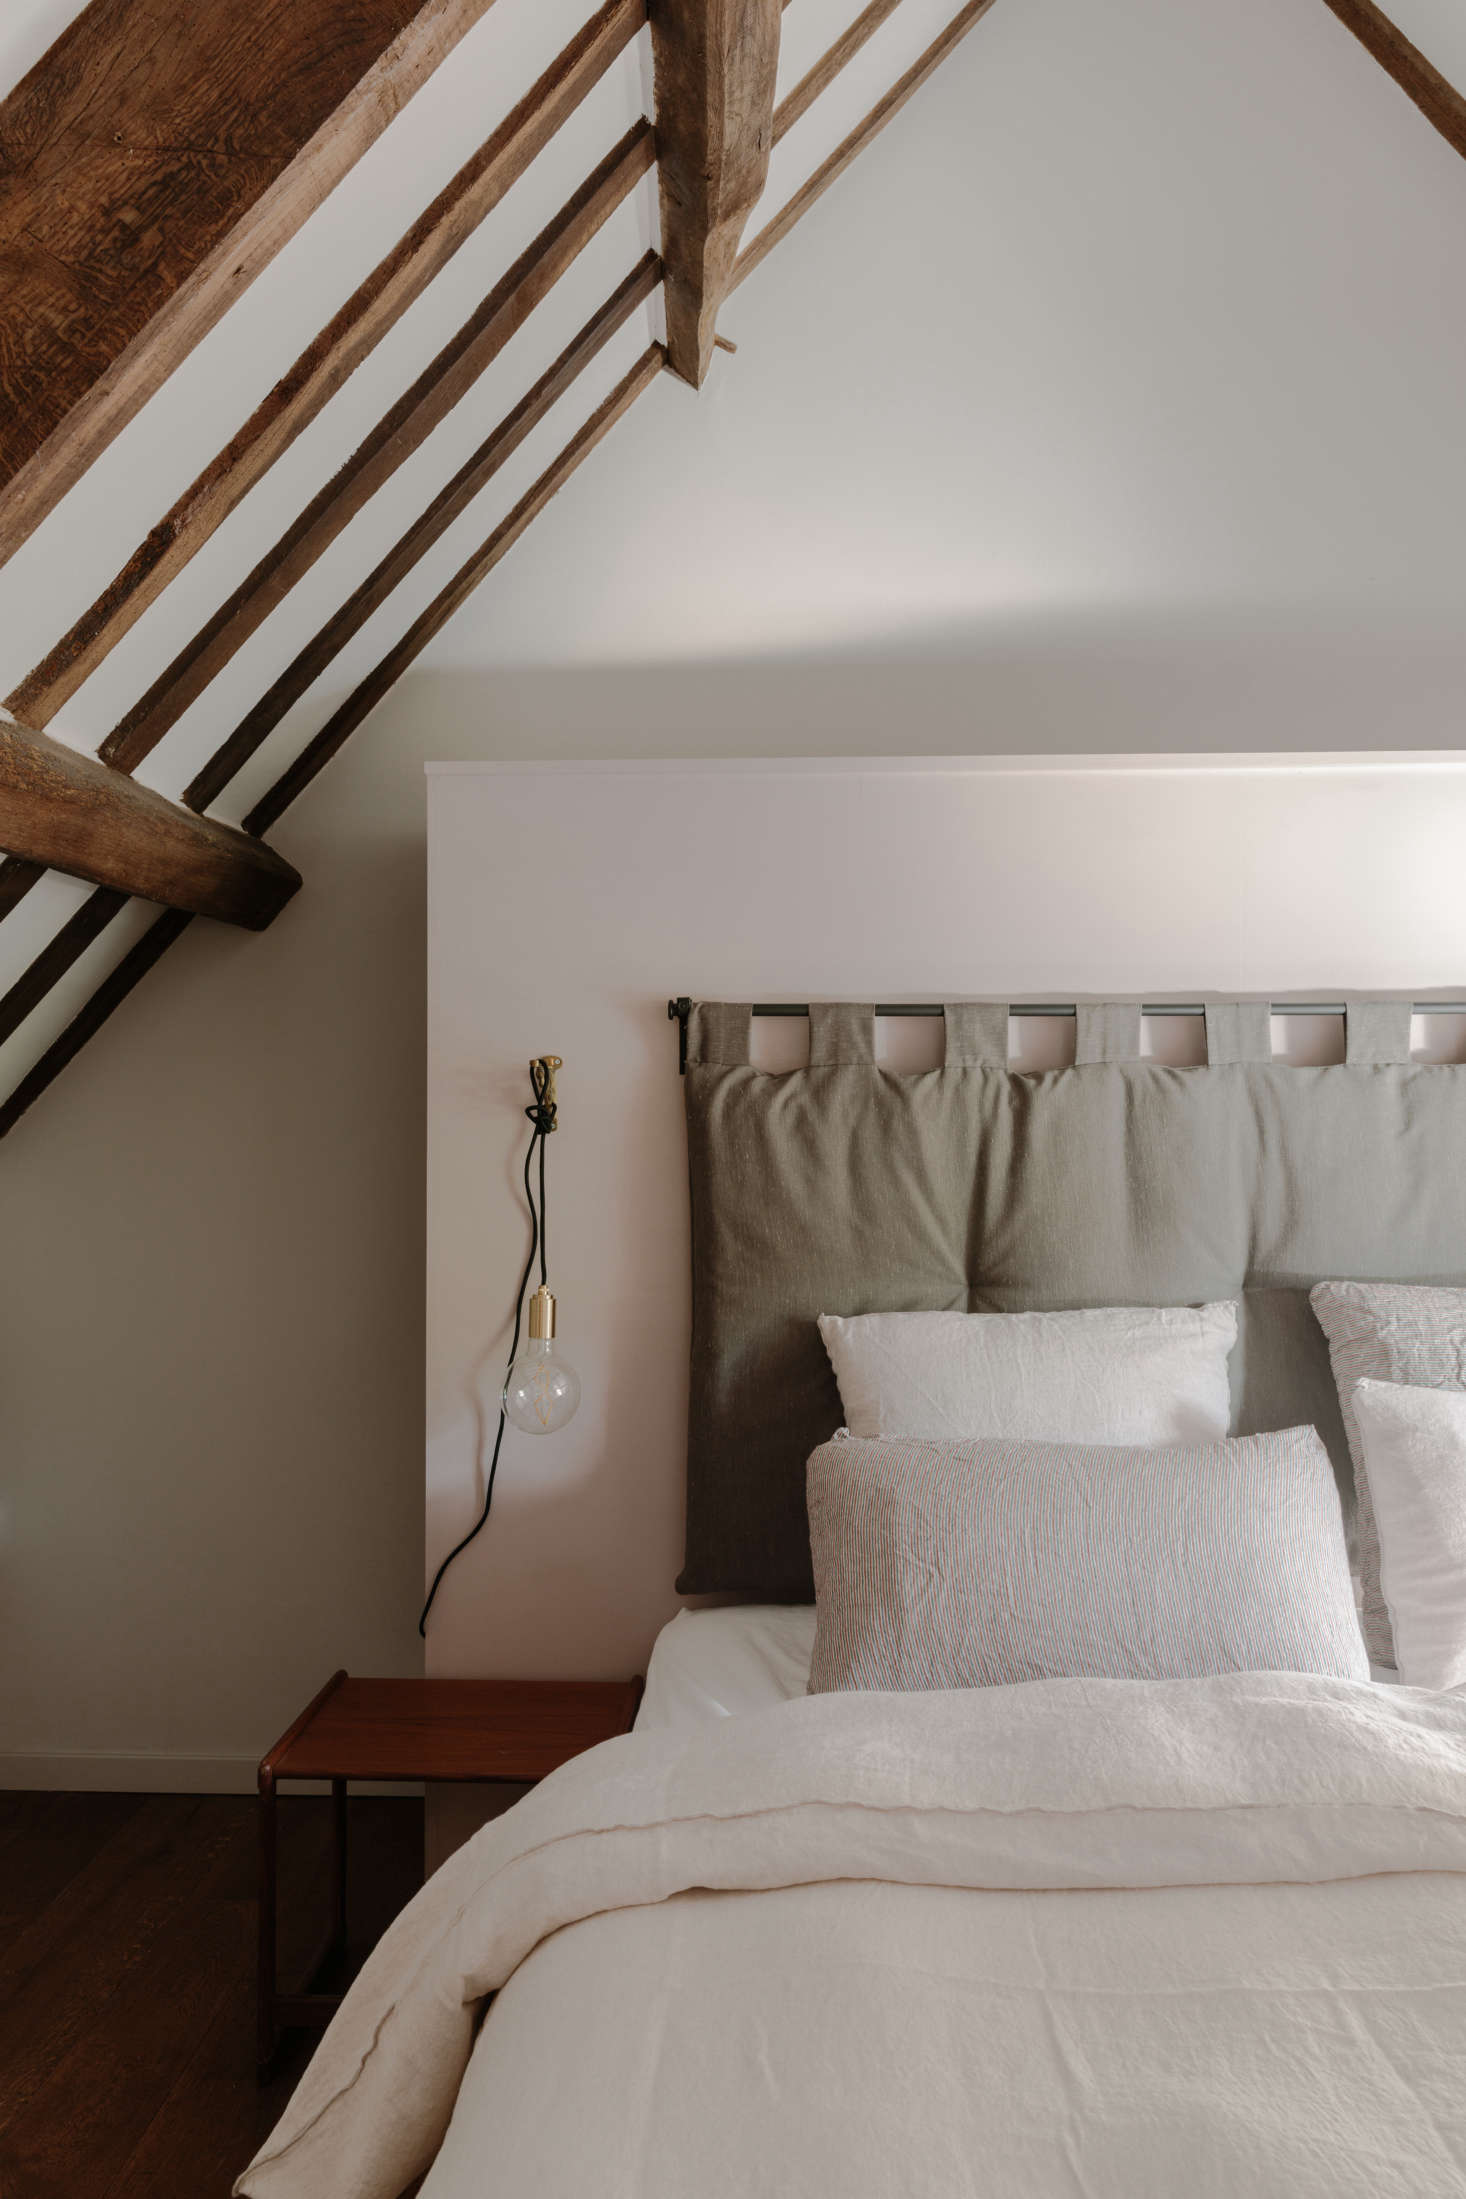 The cloth headboards throughout the cottages were hand-made by a local outfit,Badminton Blinds. The bed linens are 0 percent linen,sourced from Globus in Switzerland.